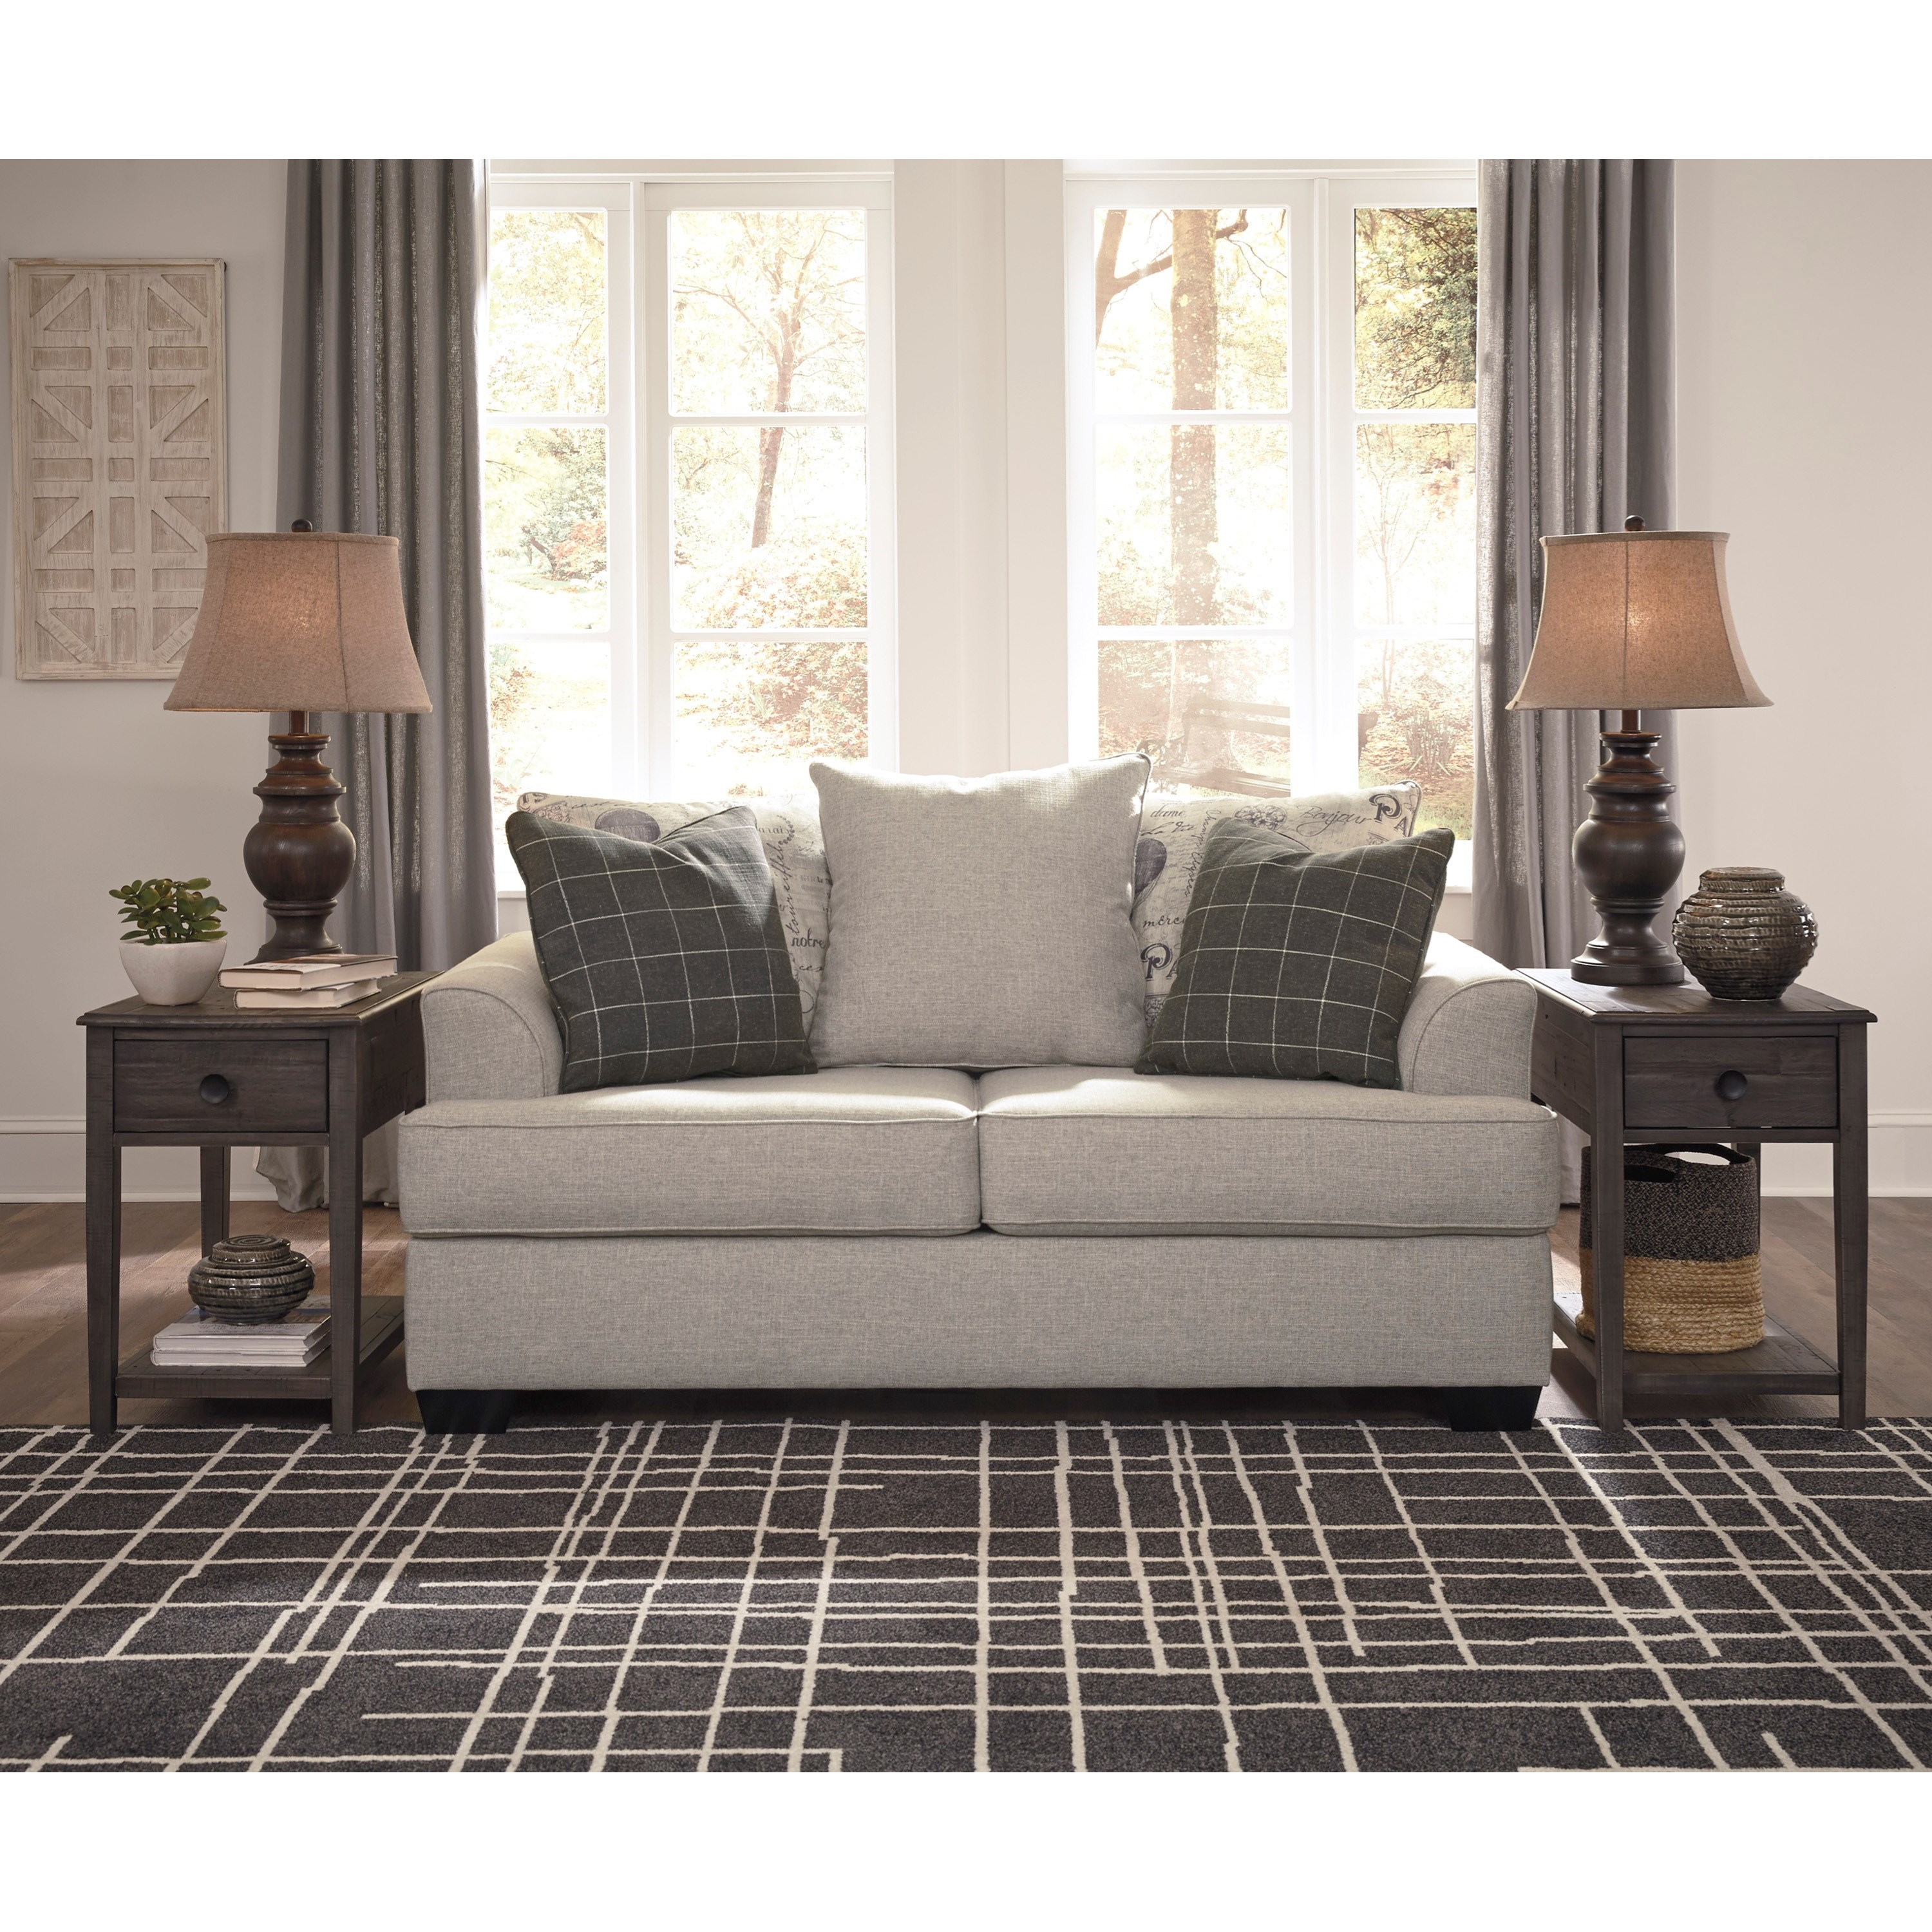 Levits Furniture: Signature Design By Ashley Velletri 7960435 Relaxed